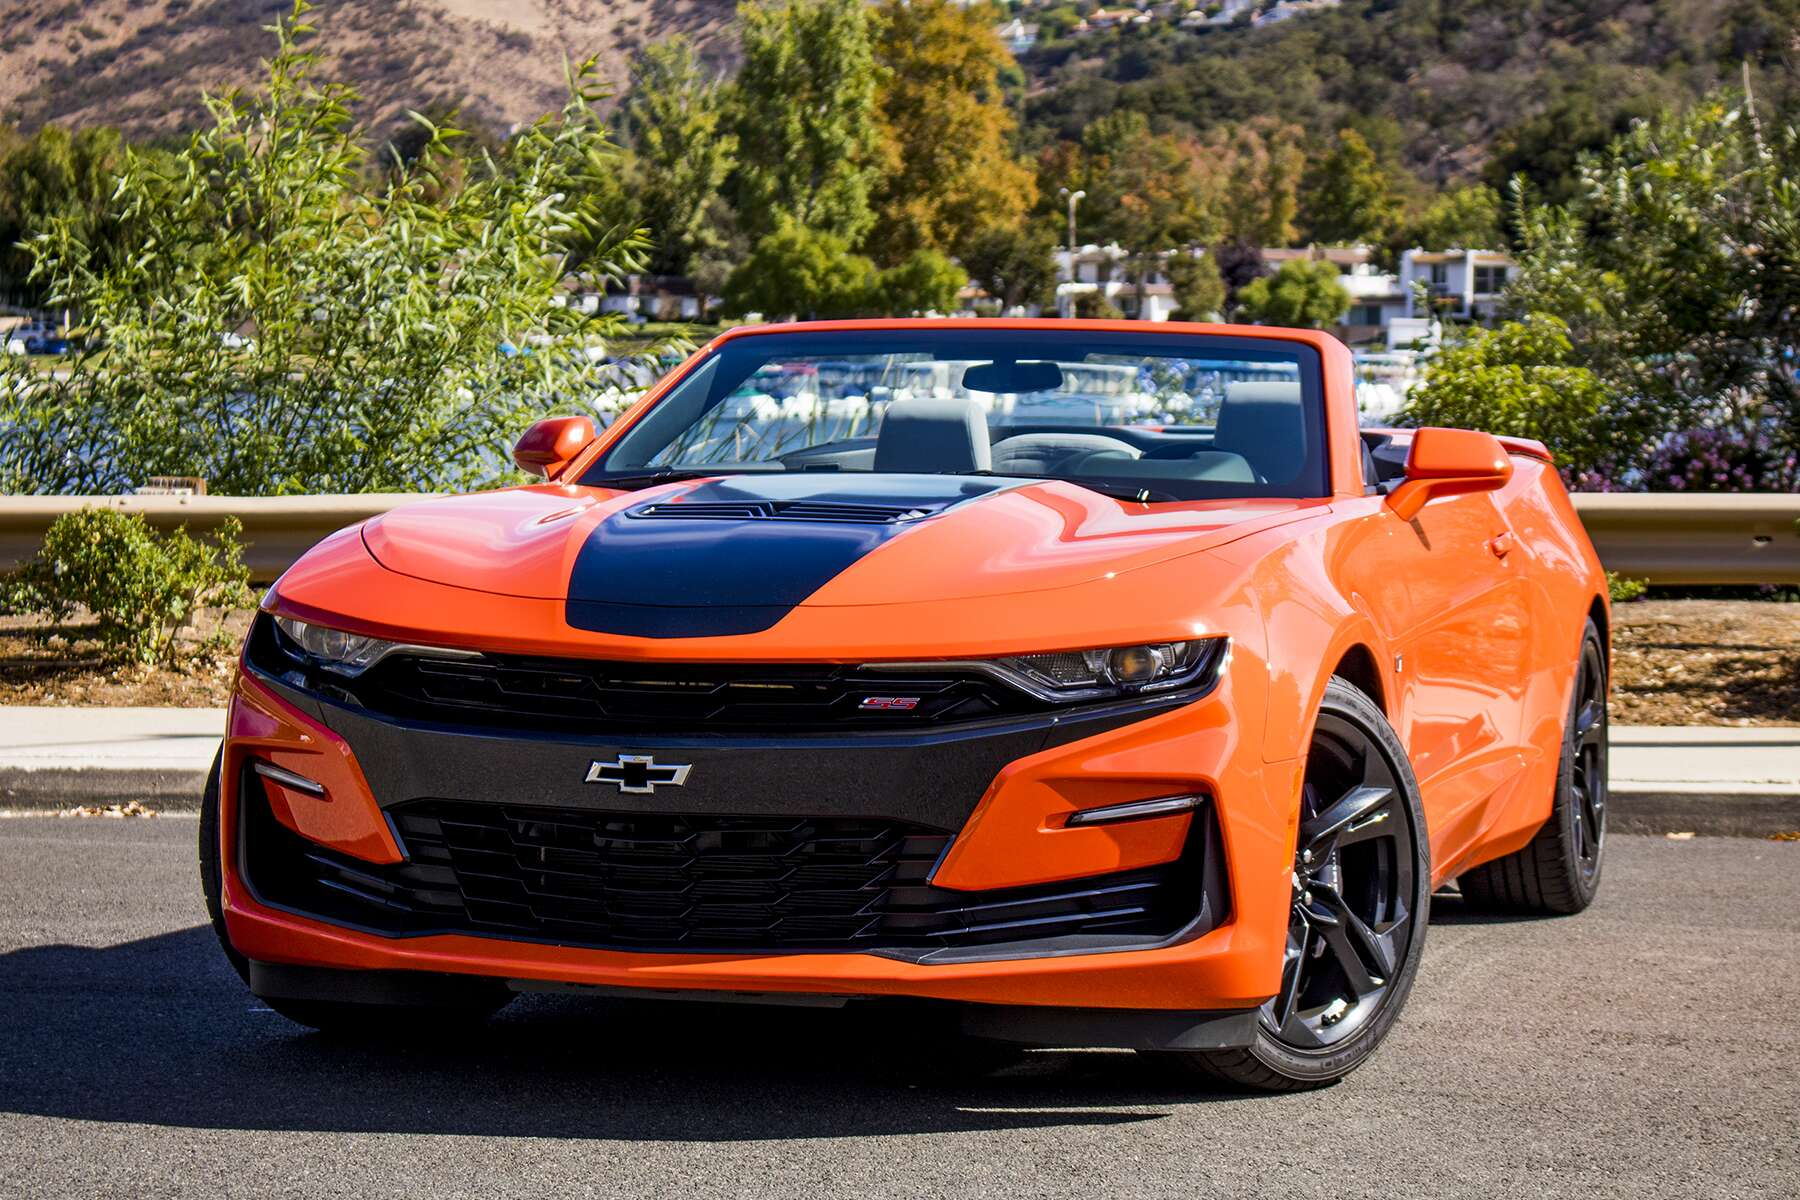 2019 Chevrolet Camaro Ss First Drive Review 10 Speed Automatic